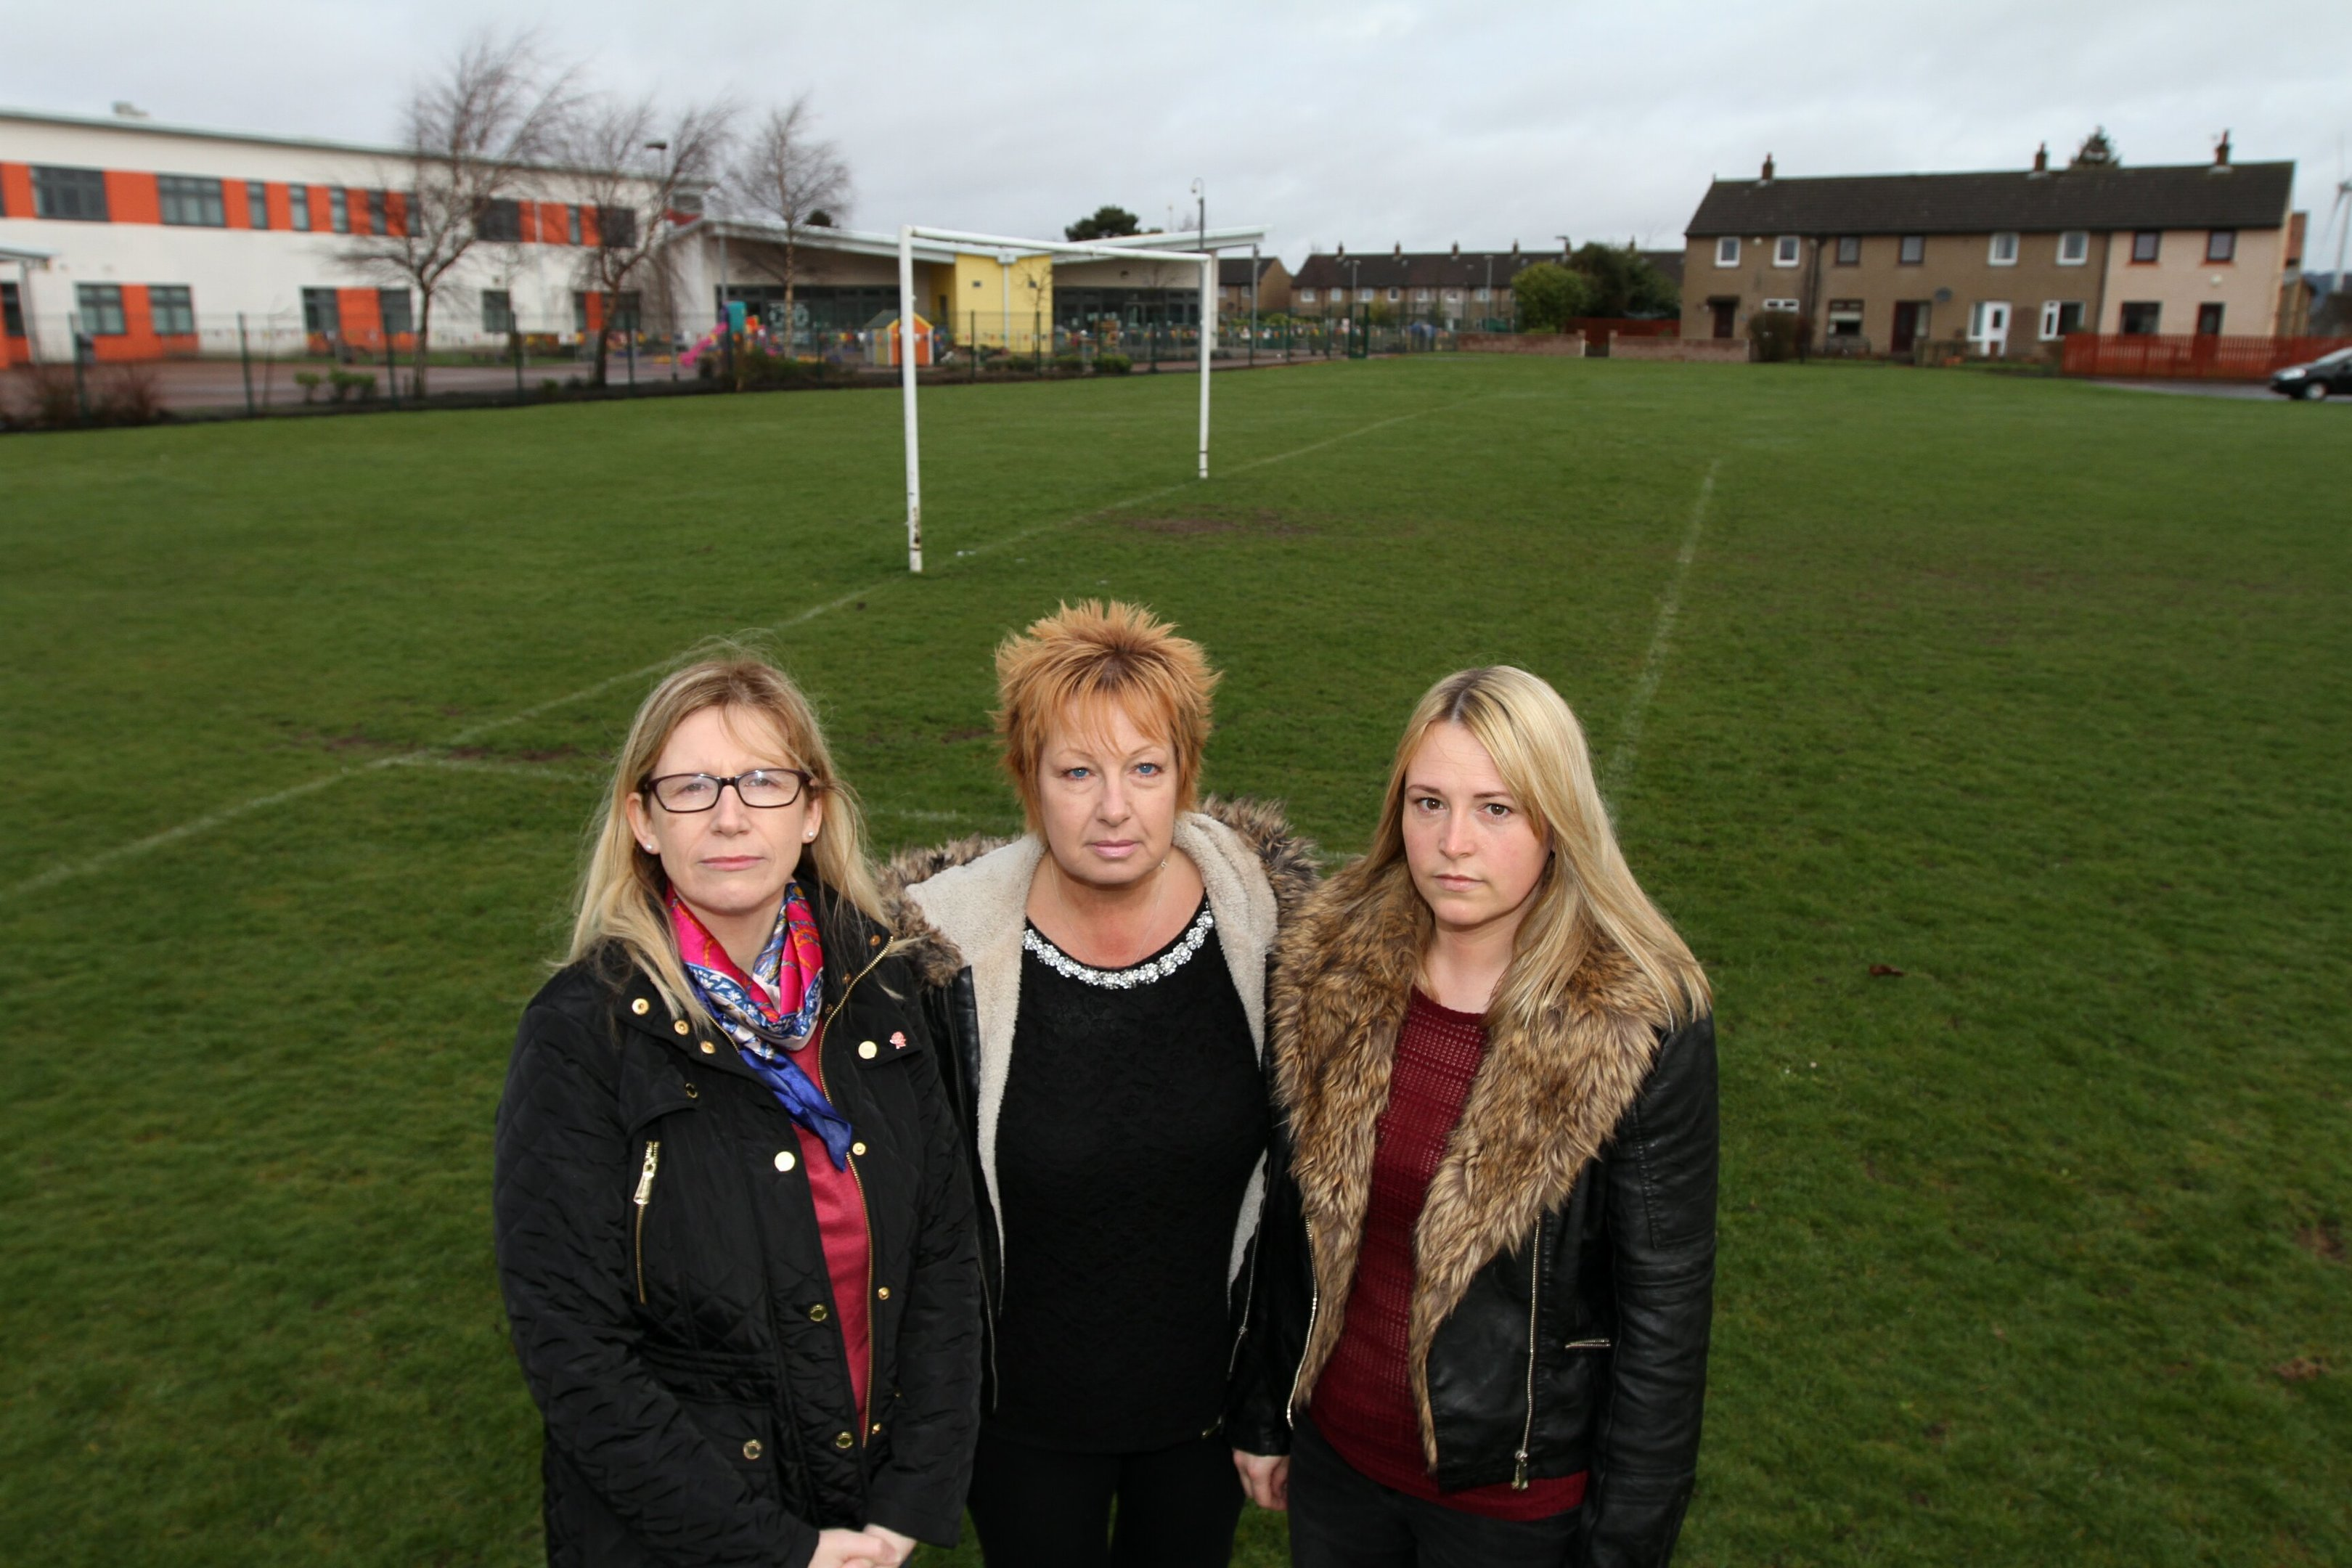 Councillor Lesley Brennan with residents Jemma Kelly and Ruth Rose.